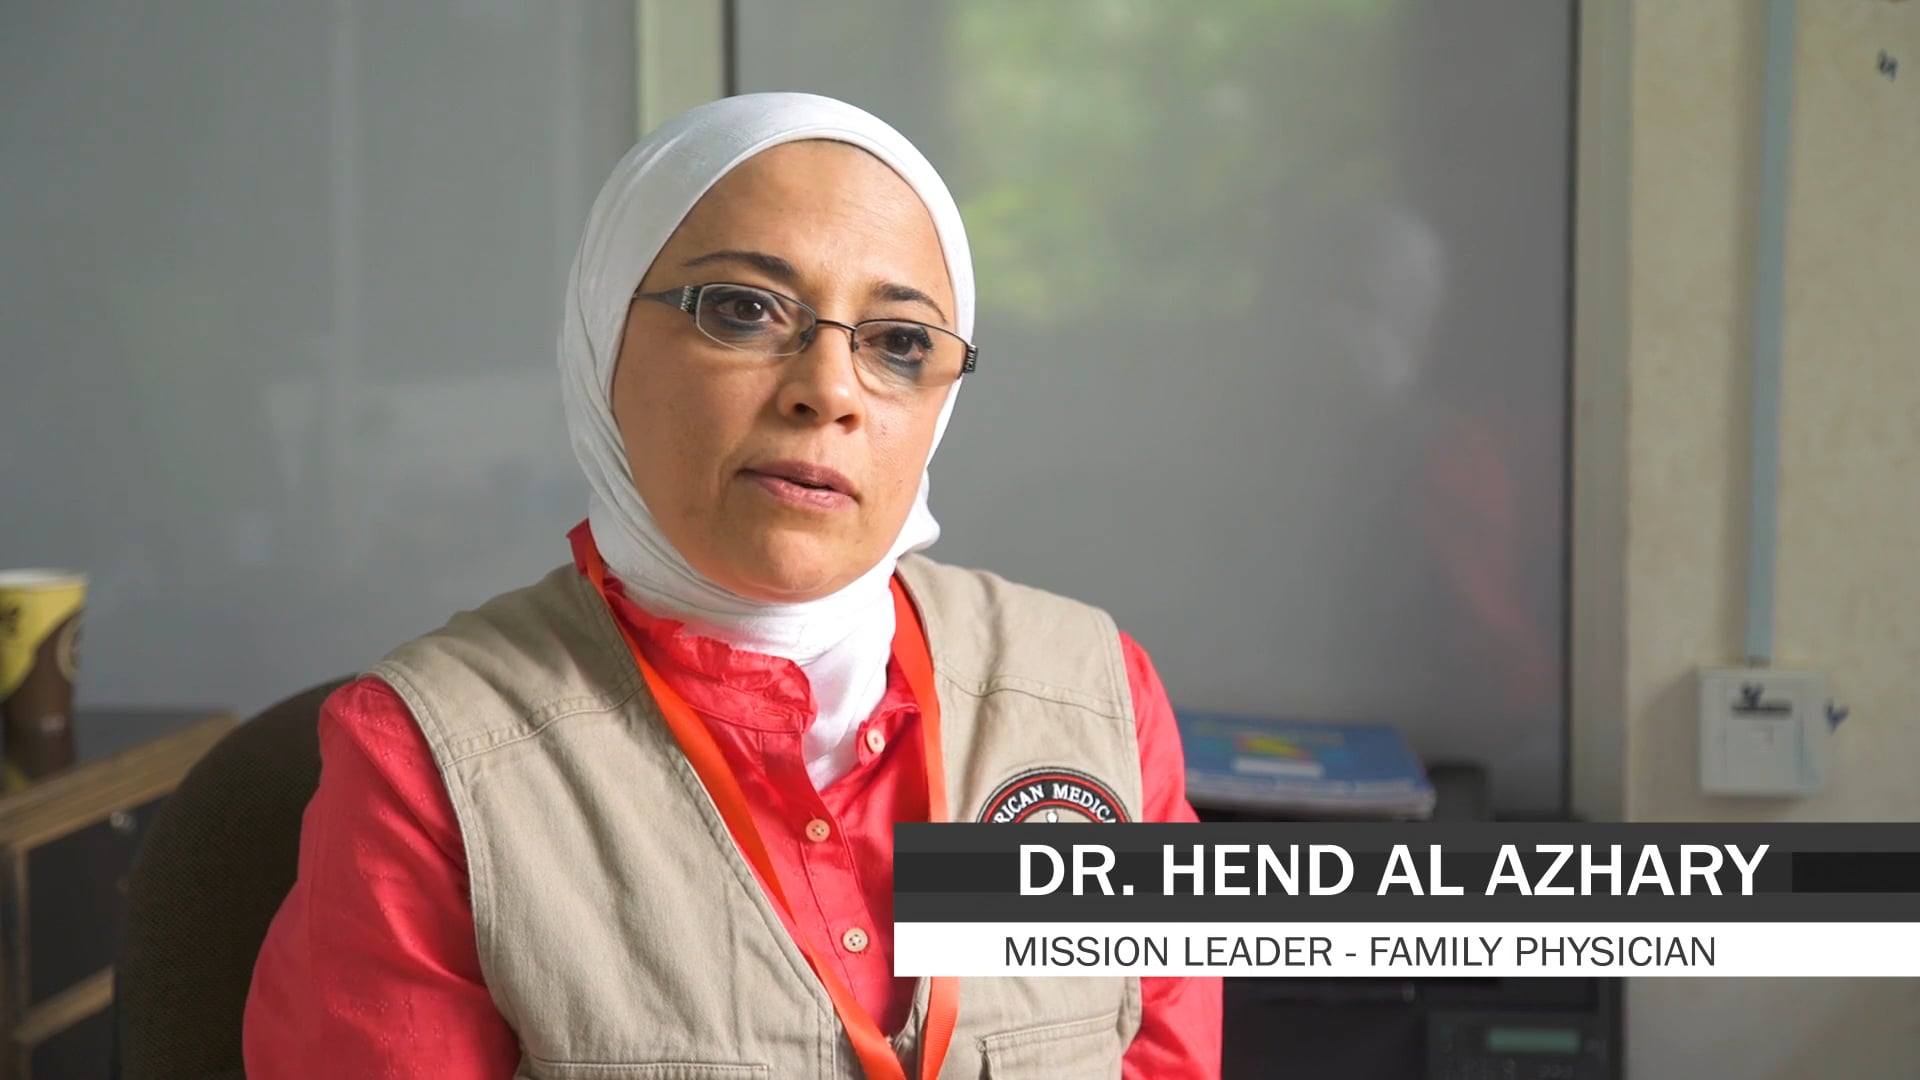 Interview with Dr. Hend Al Azhary